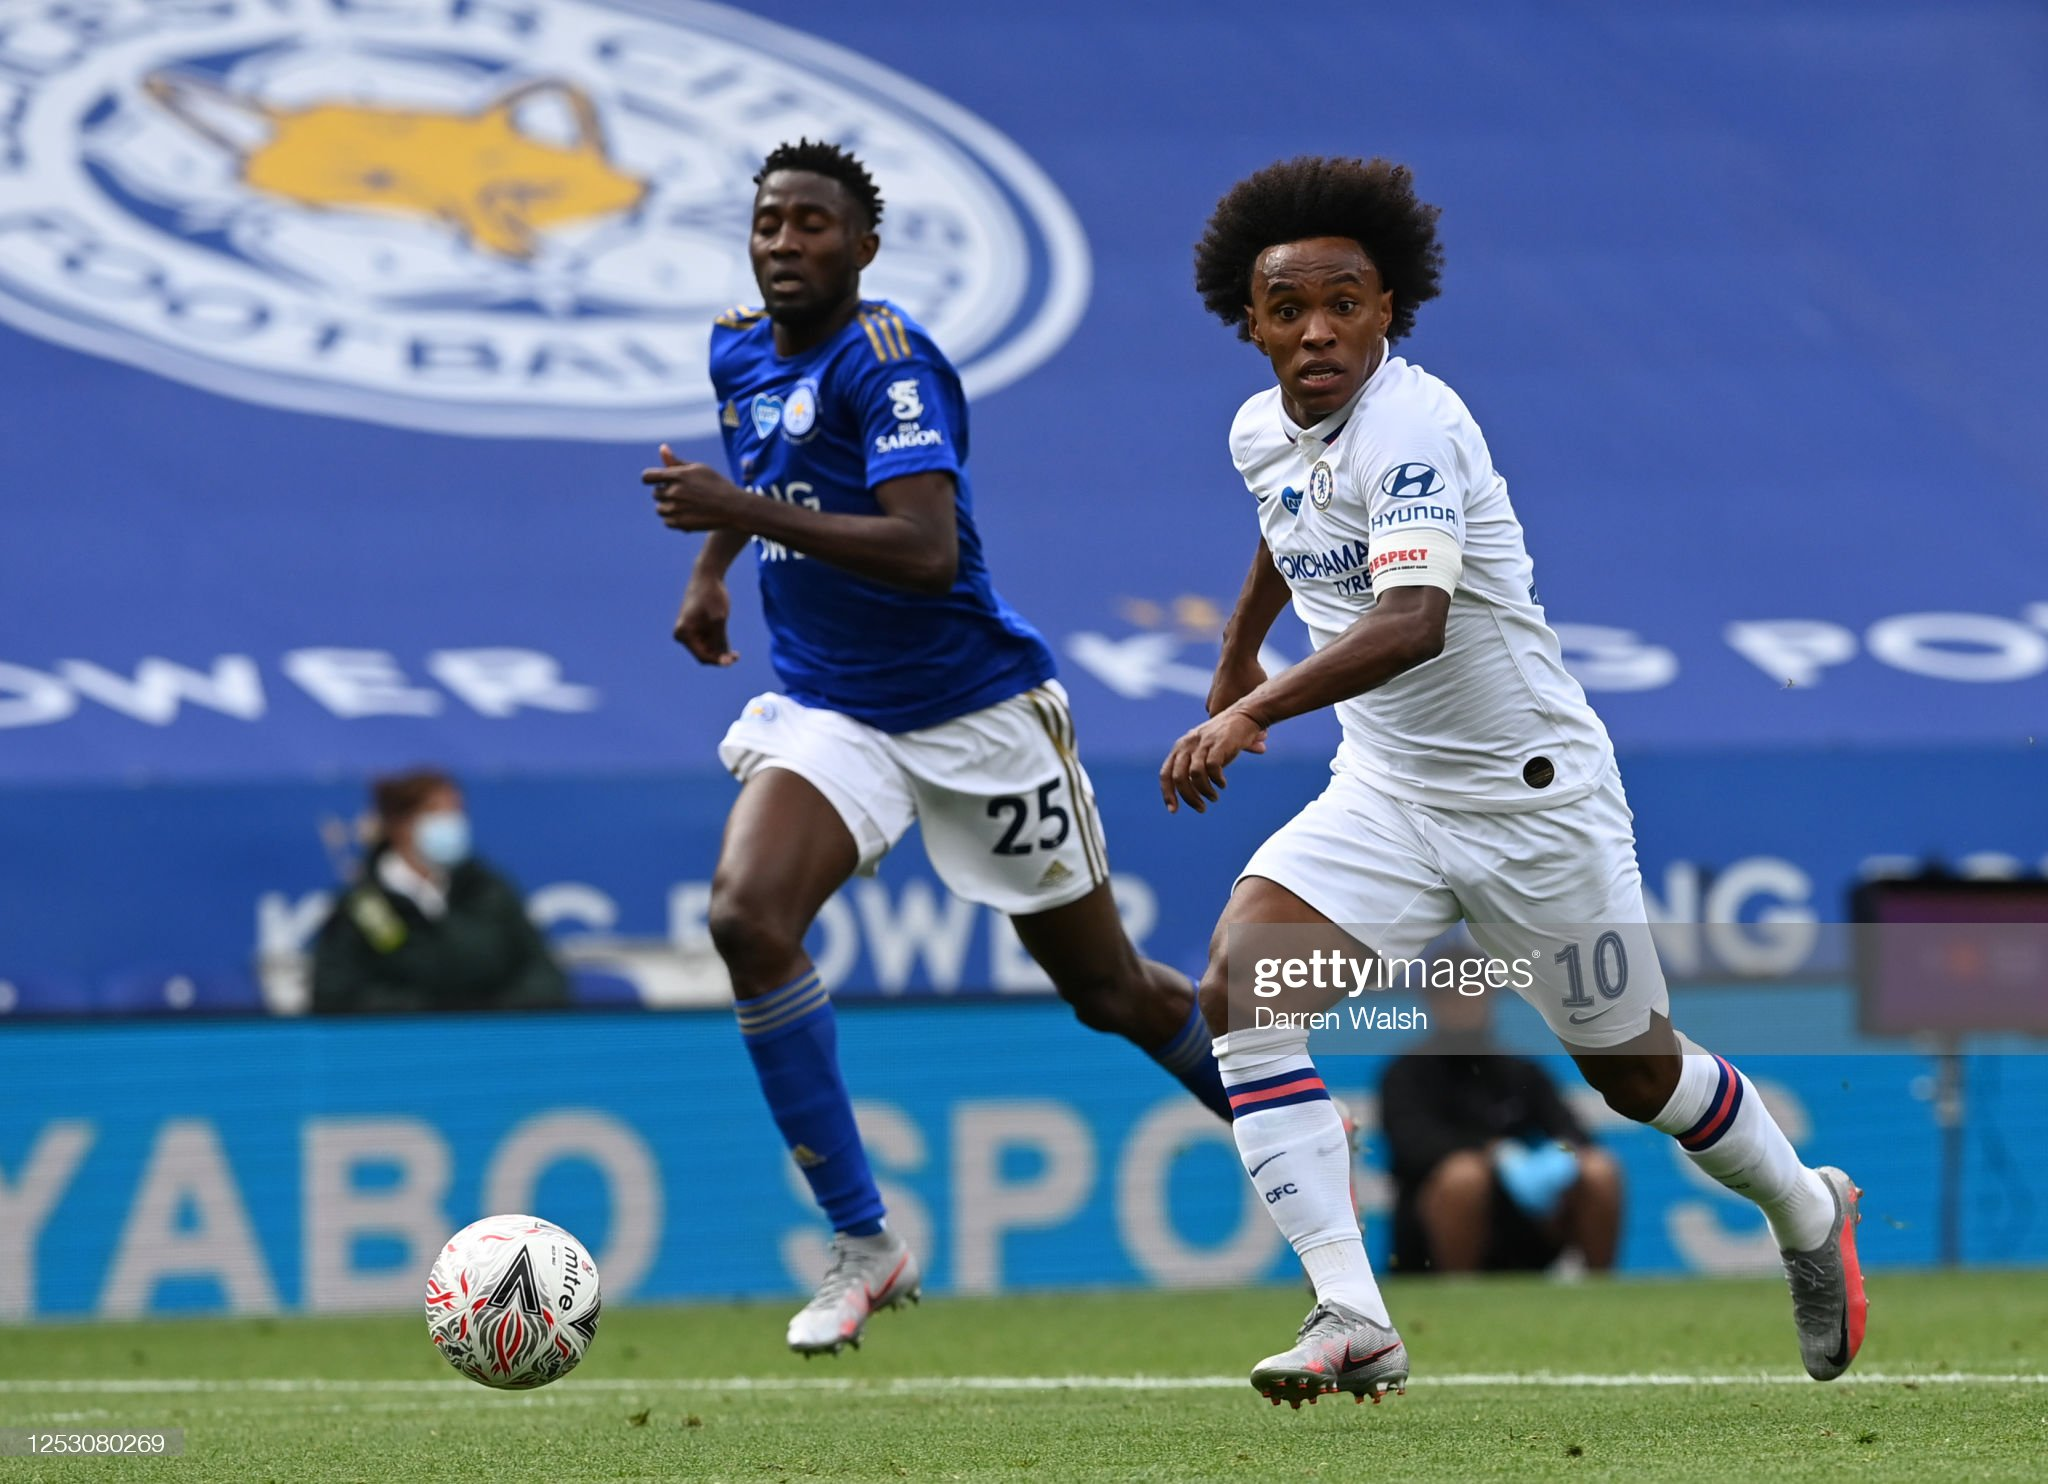 Leicester City v Chelsea FC - FA Cup: Quarter Final : News Photo